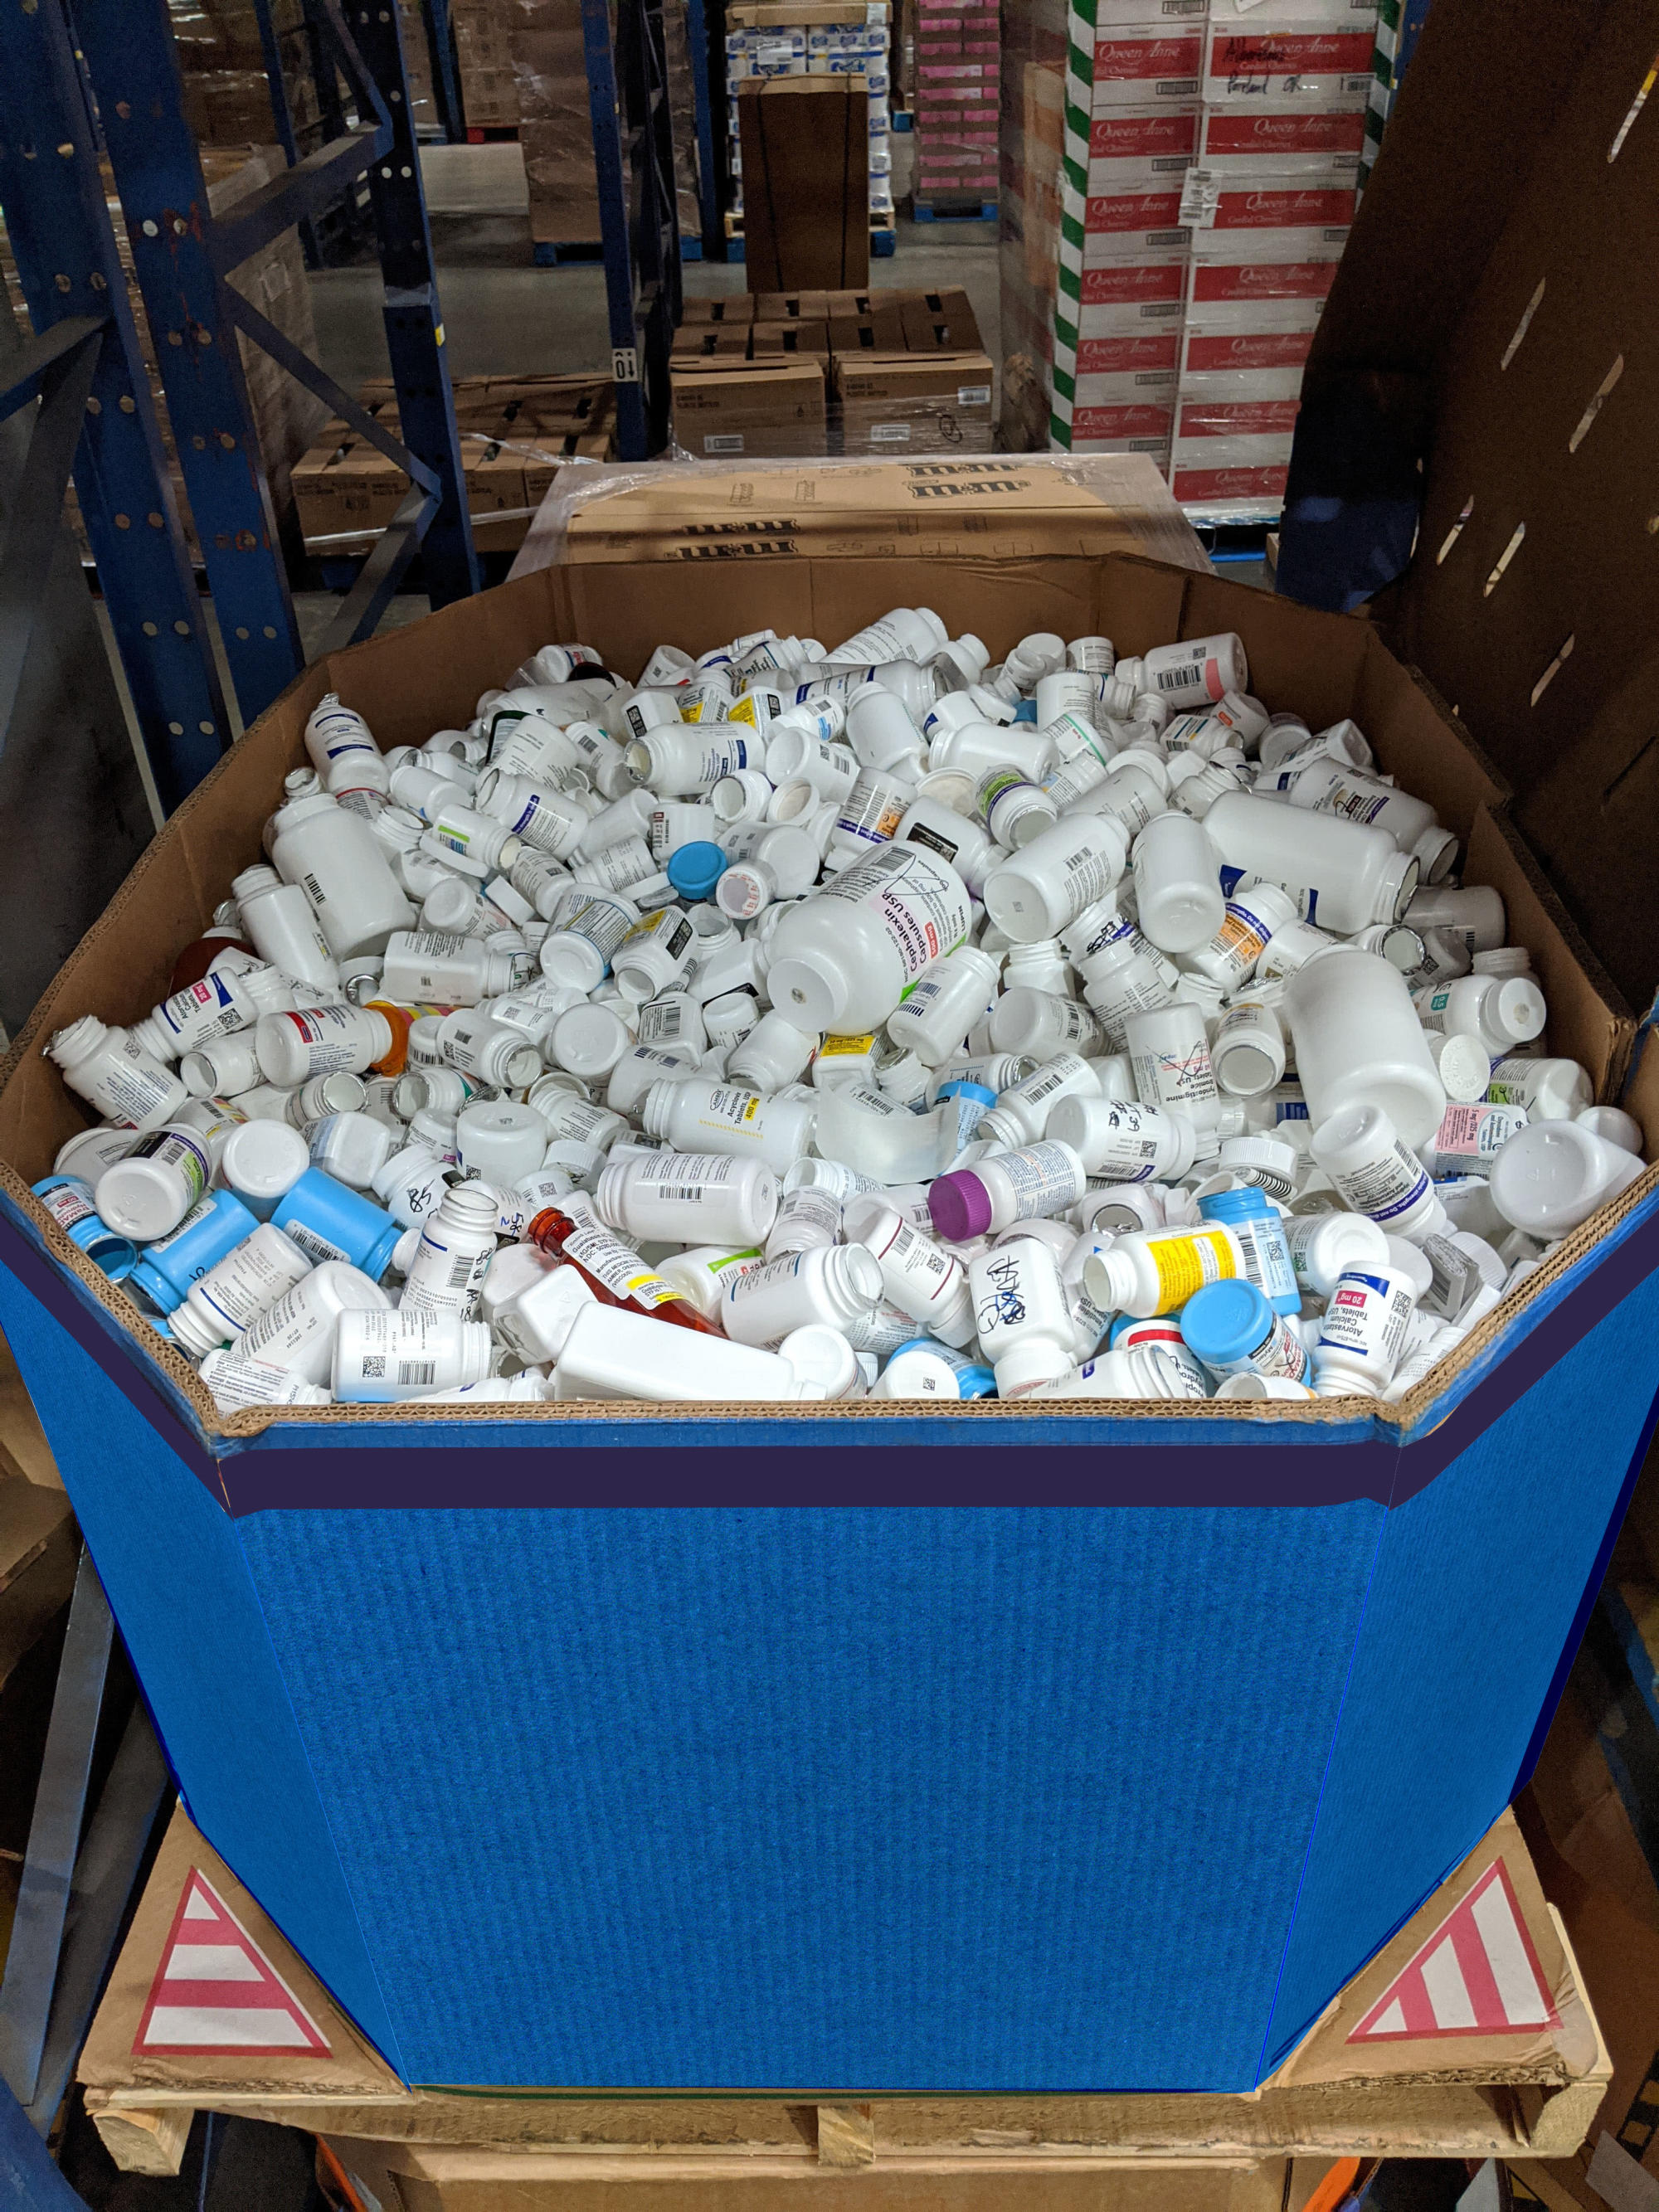 Trex Company And Albertsons Companies Recycle Bulk Pharmacy Dispensing Bottles To Make Decking Material And Keep Plastic Out Of Landfills